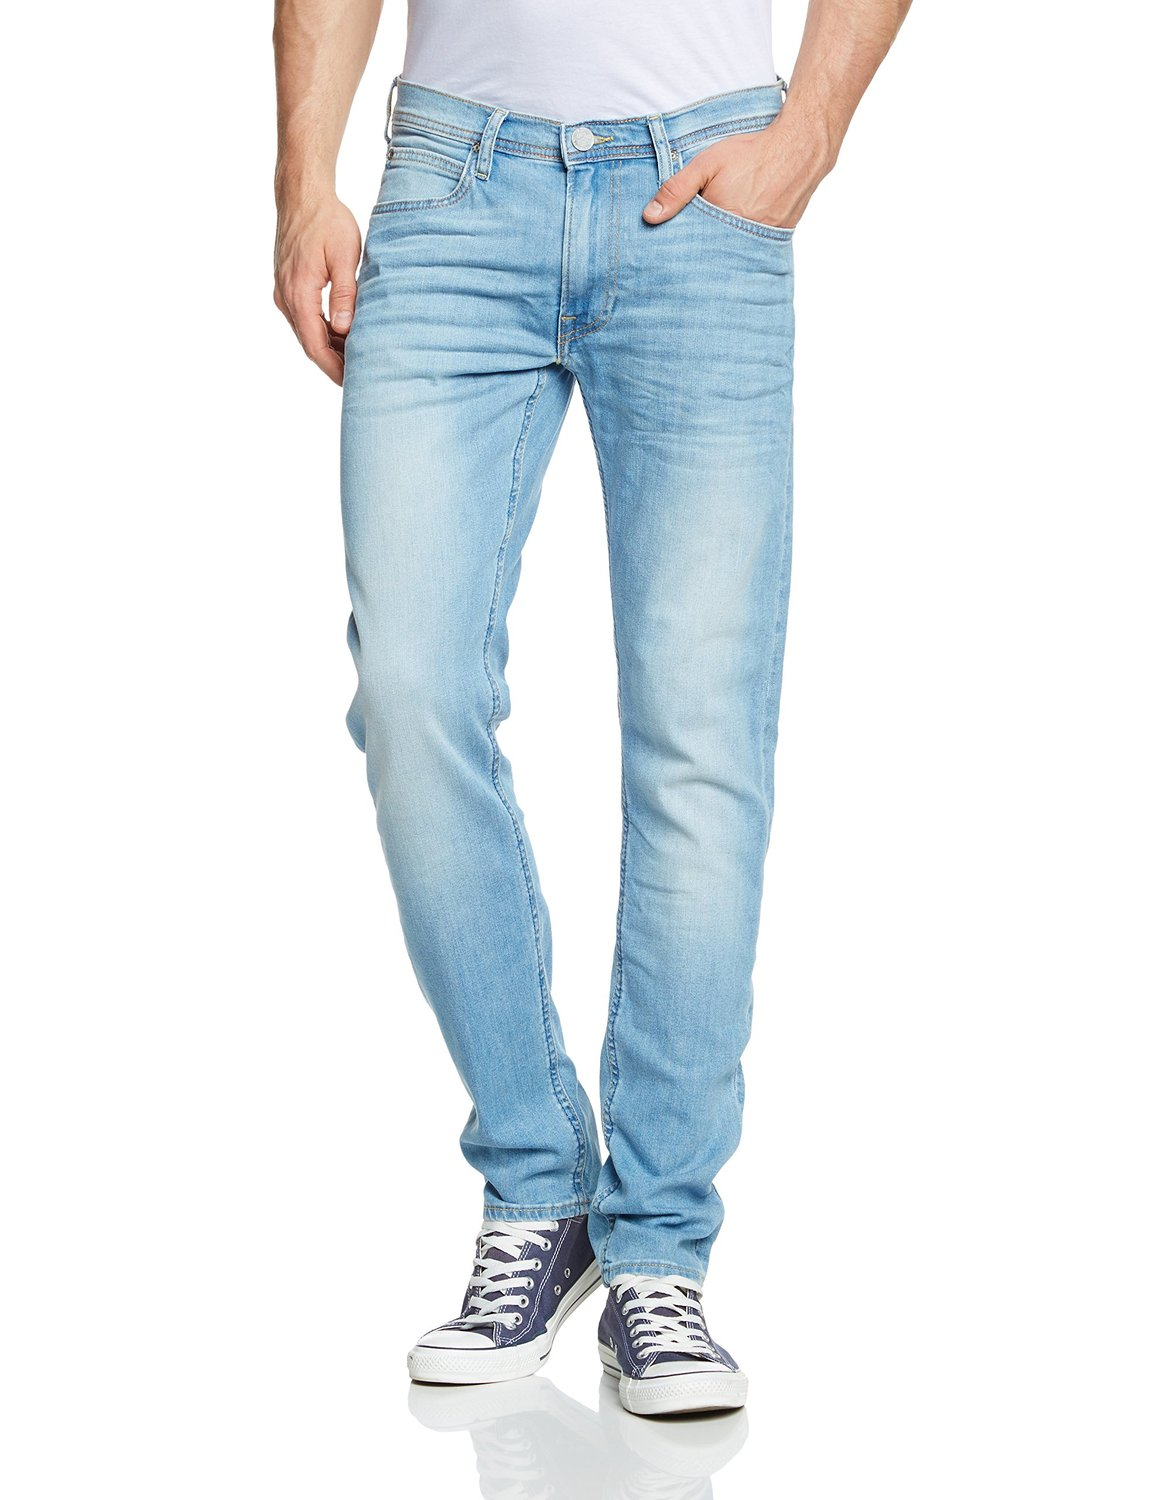 210d671b Lee Luke Slim Tapered Denim Jeans New Mens Stretch Regular Rise ...